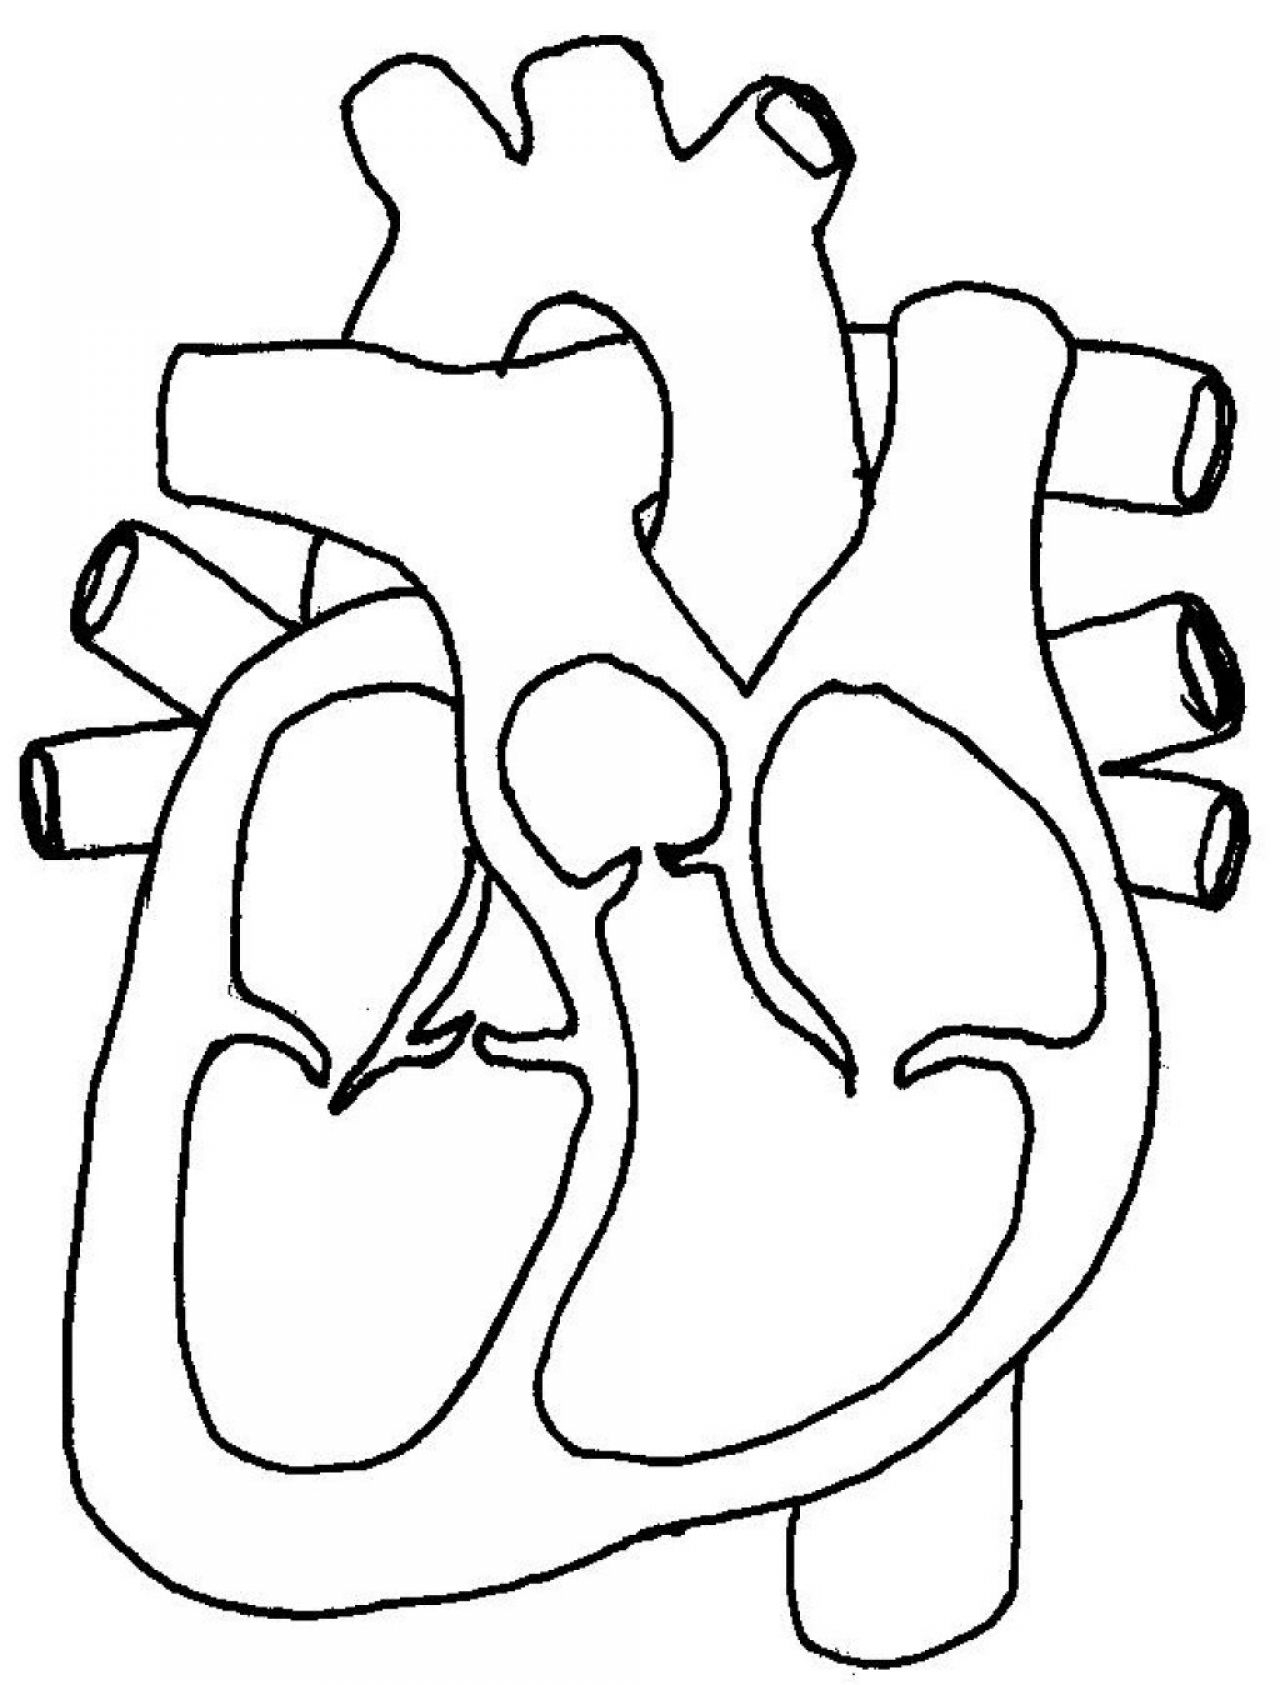 1280x1685 Human Heart Structure Black White Blank Heart Diagram Free